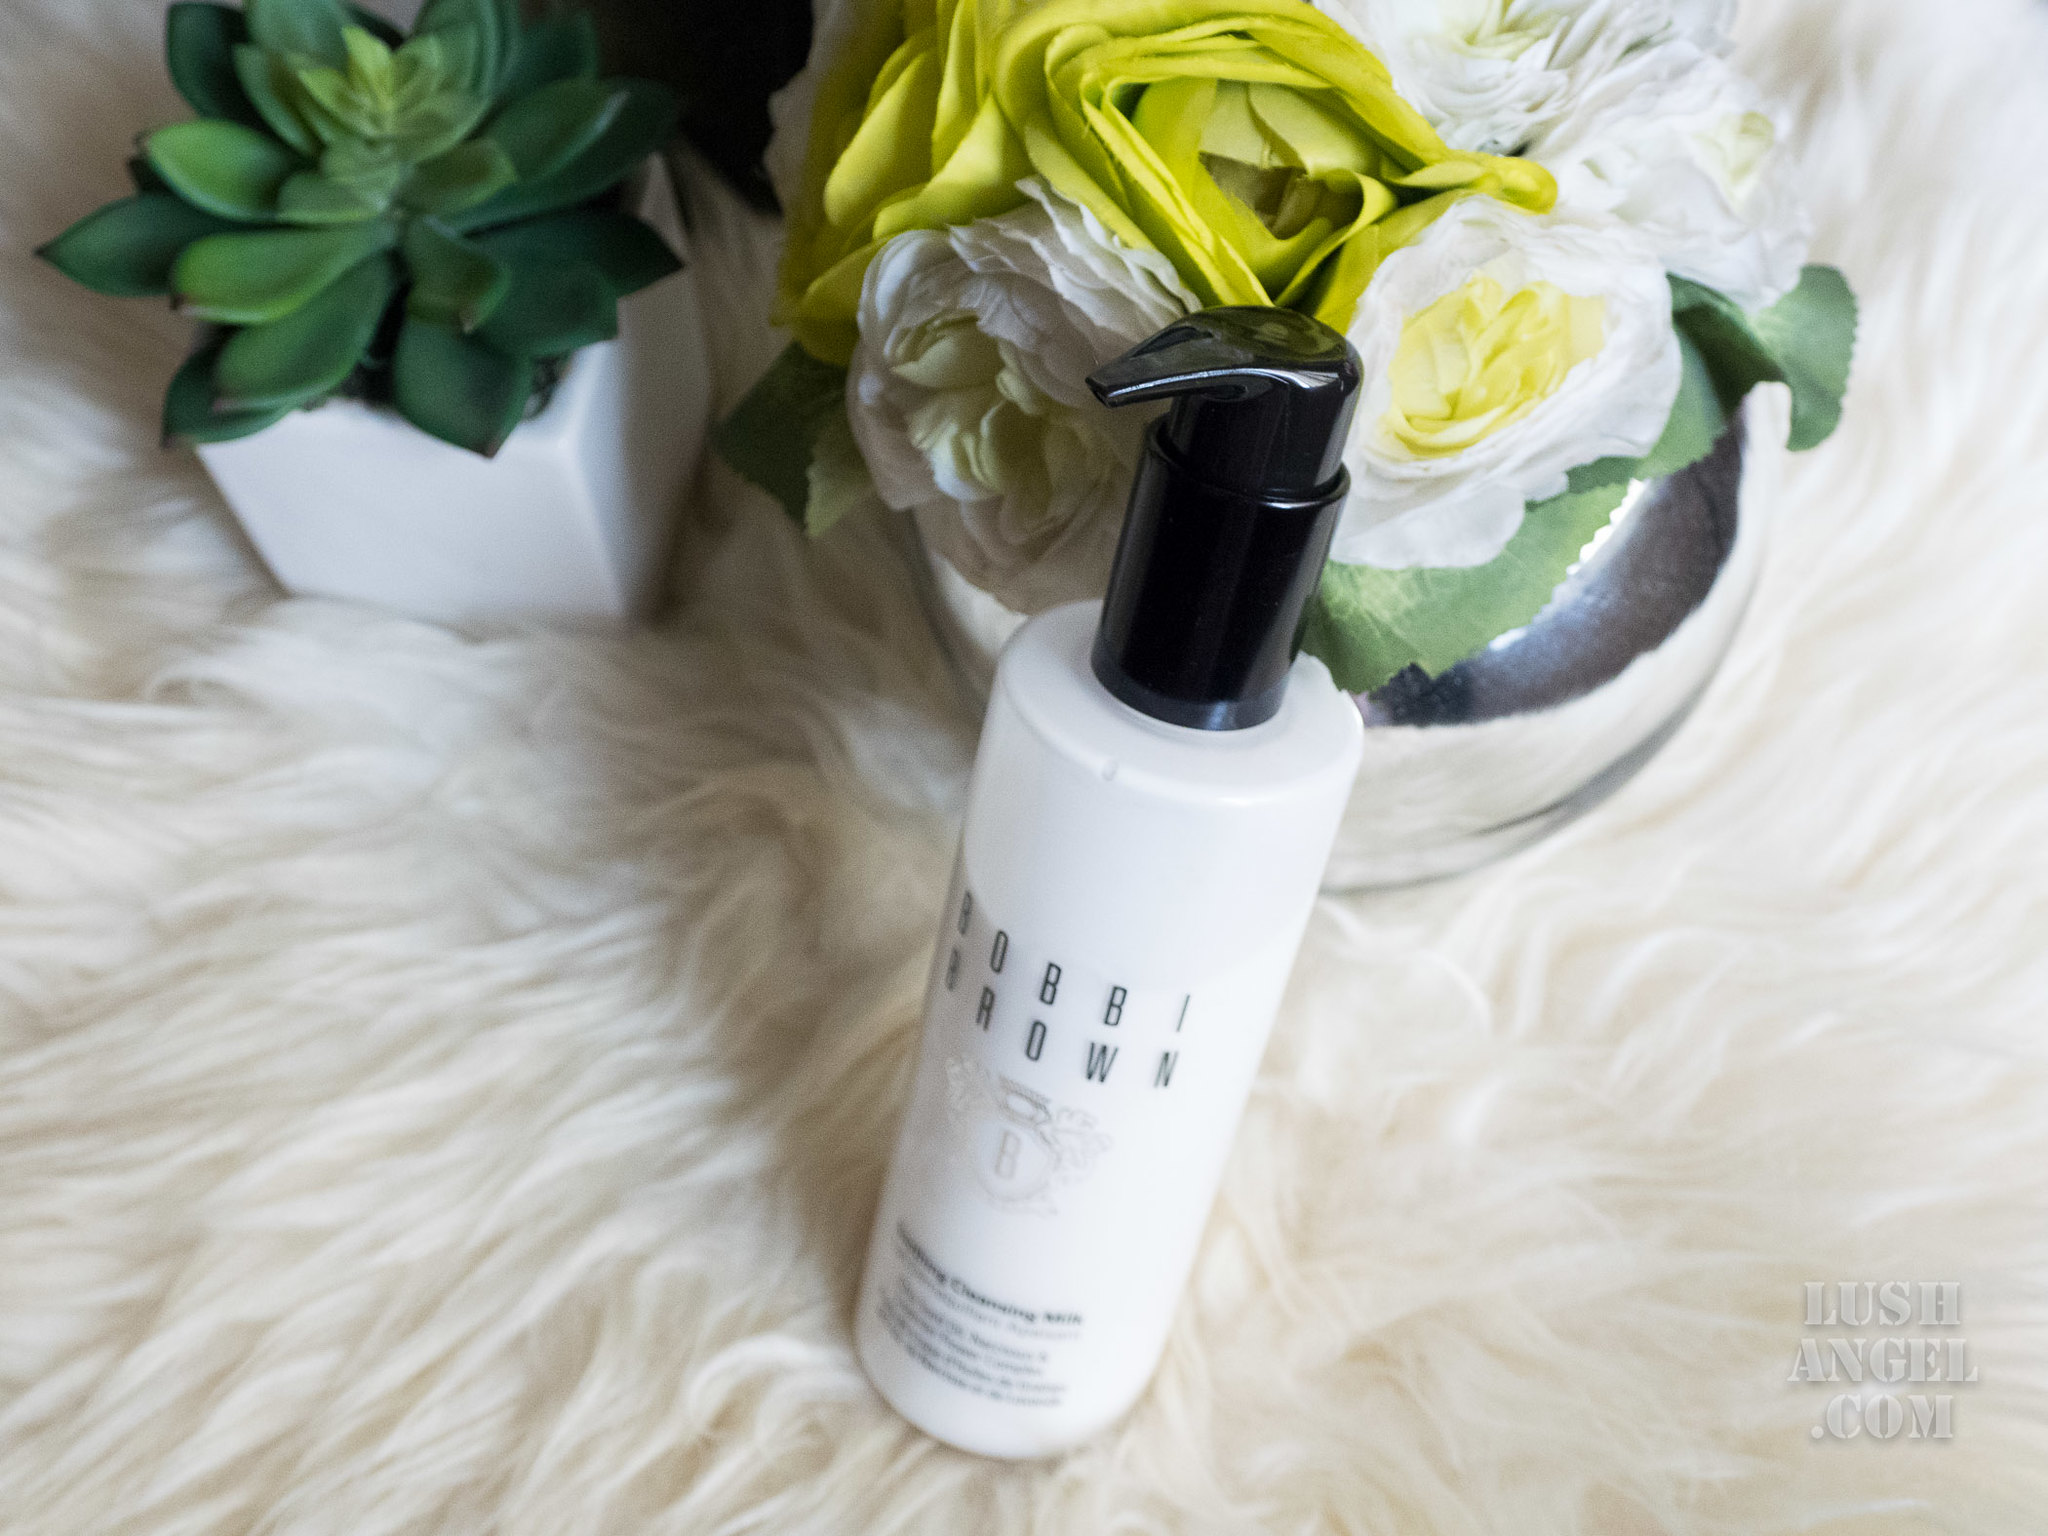 bobbi-brown-cleansing-milk